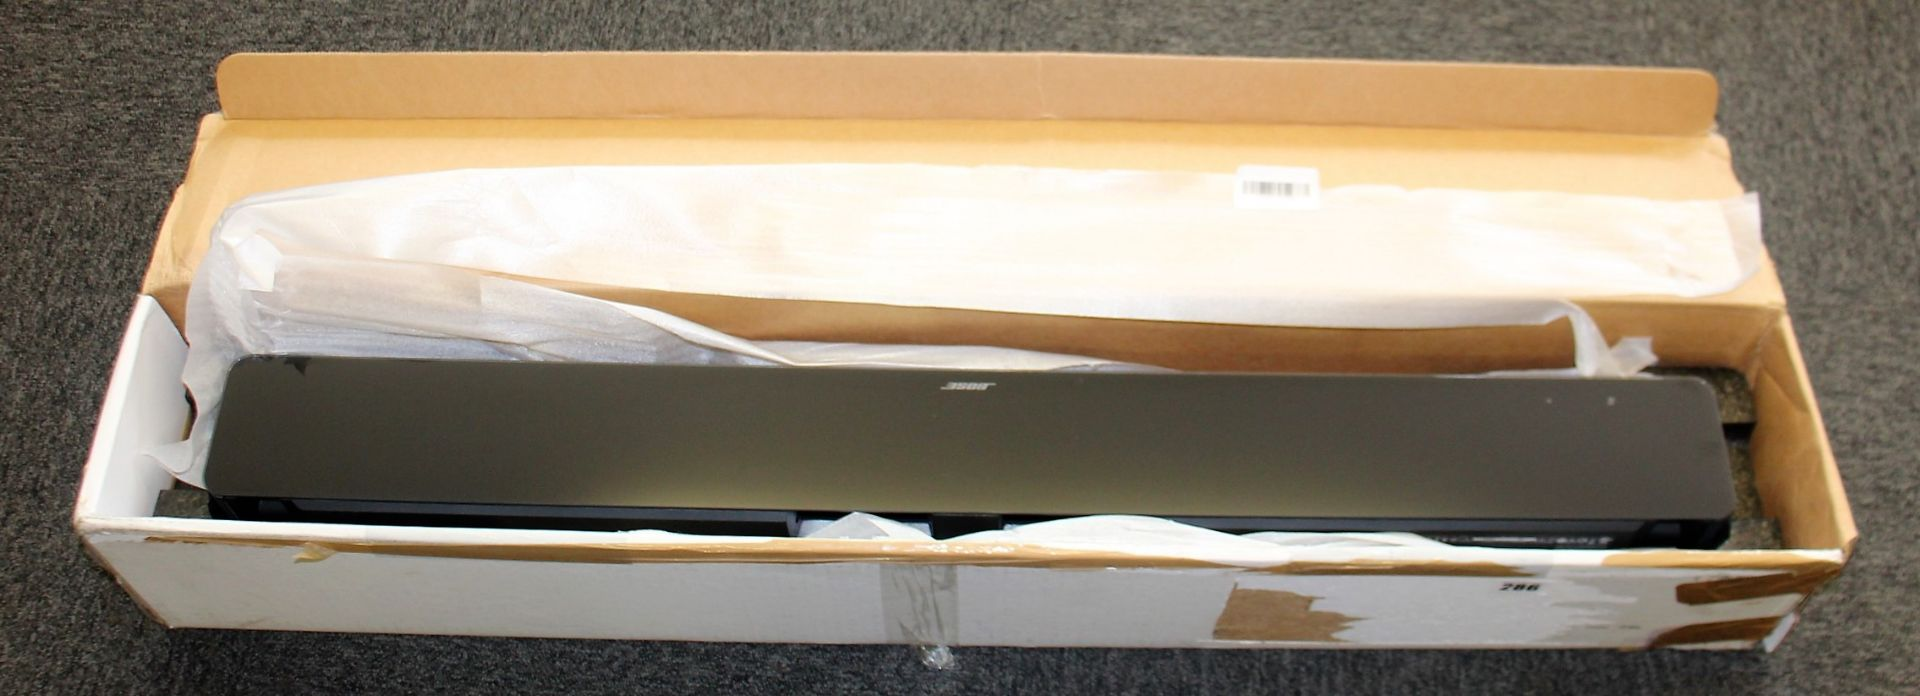 COLLECTION ONLY: A factory refurbished Bose Soundbar 700 in Black (Box damaged). - Image 8 of 11